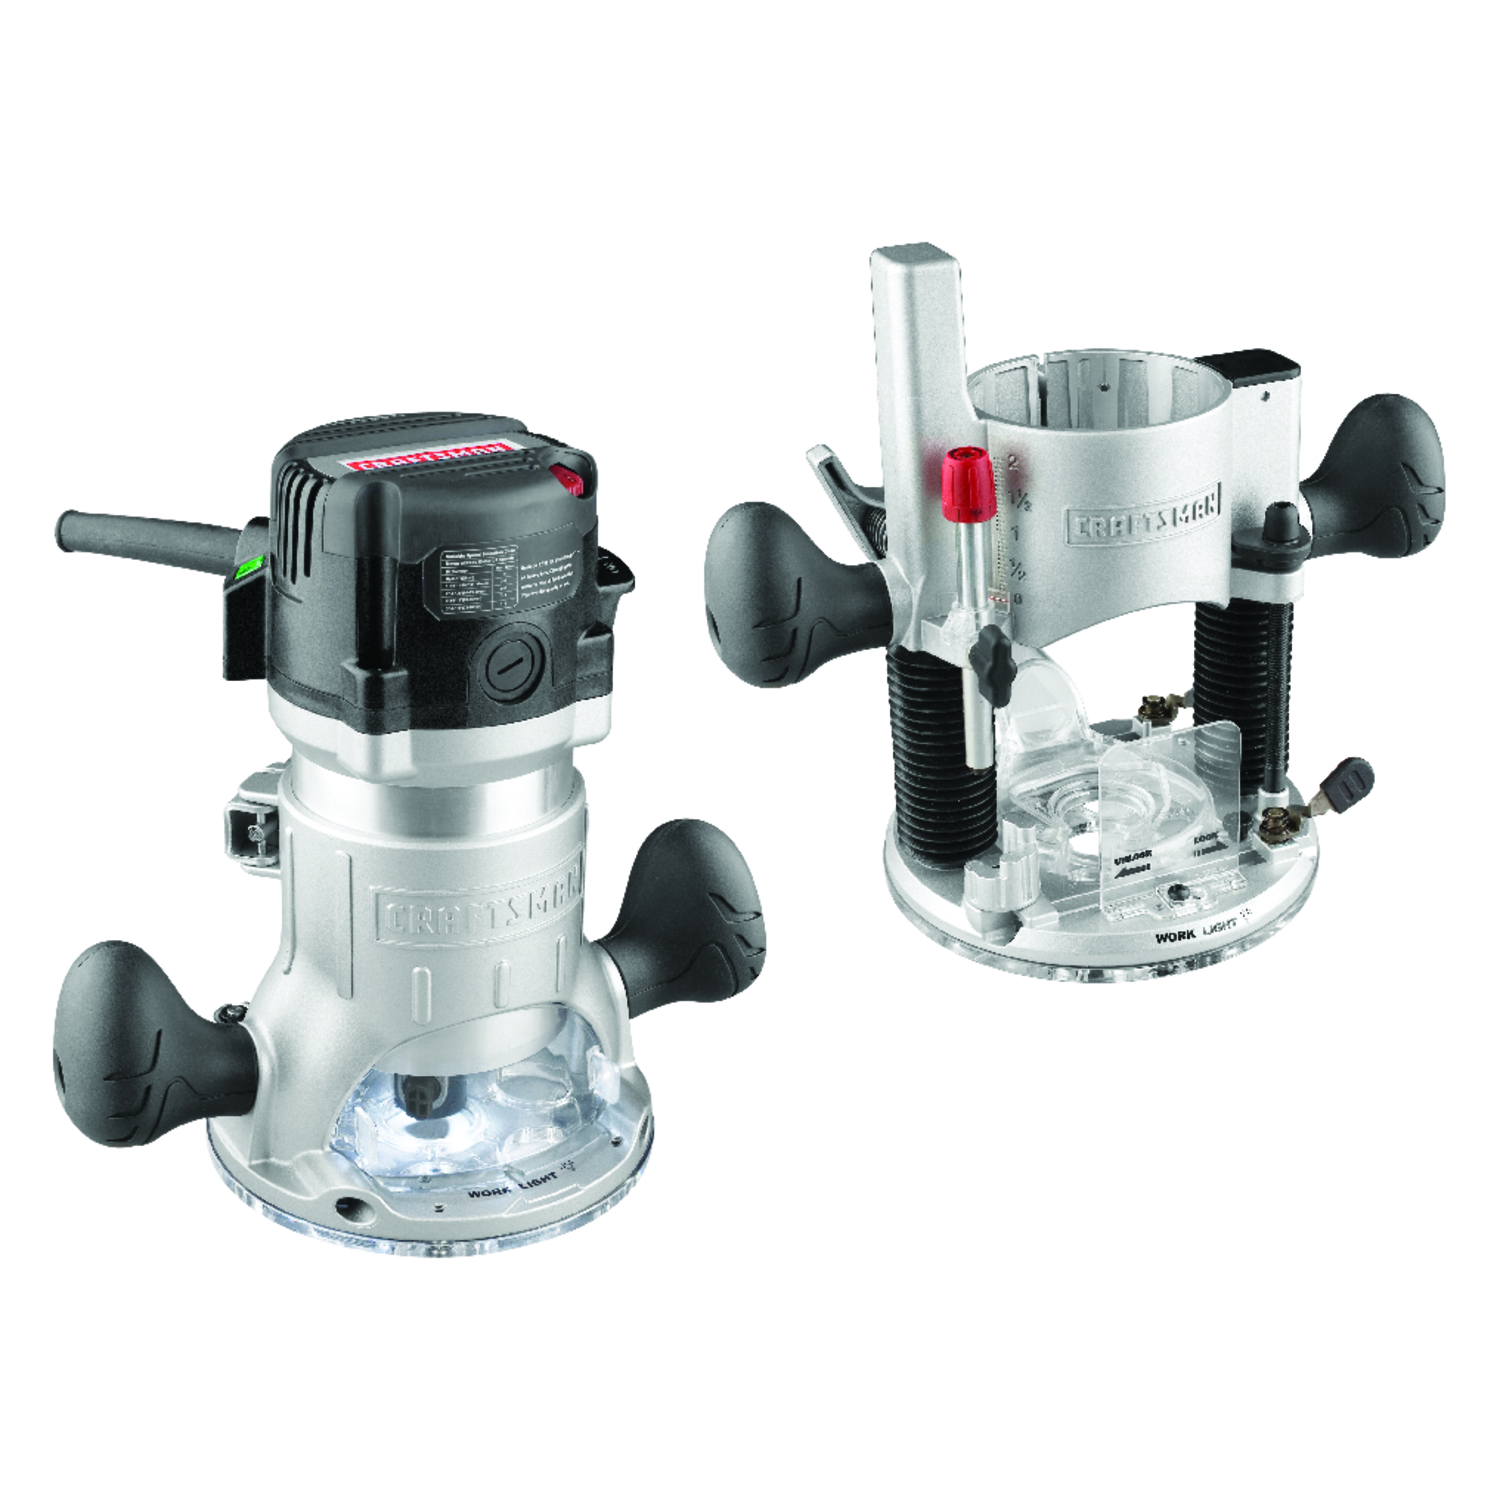 Craftsman Fixed Plunge Base Router Combo 2 Hp 25 000 Rpm 12 Amp 1 4